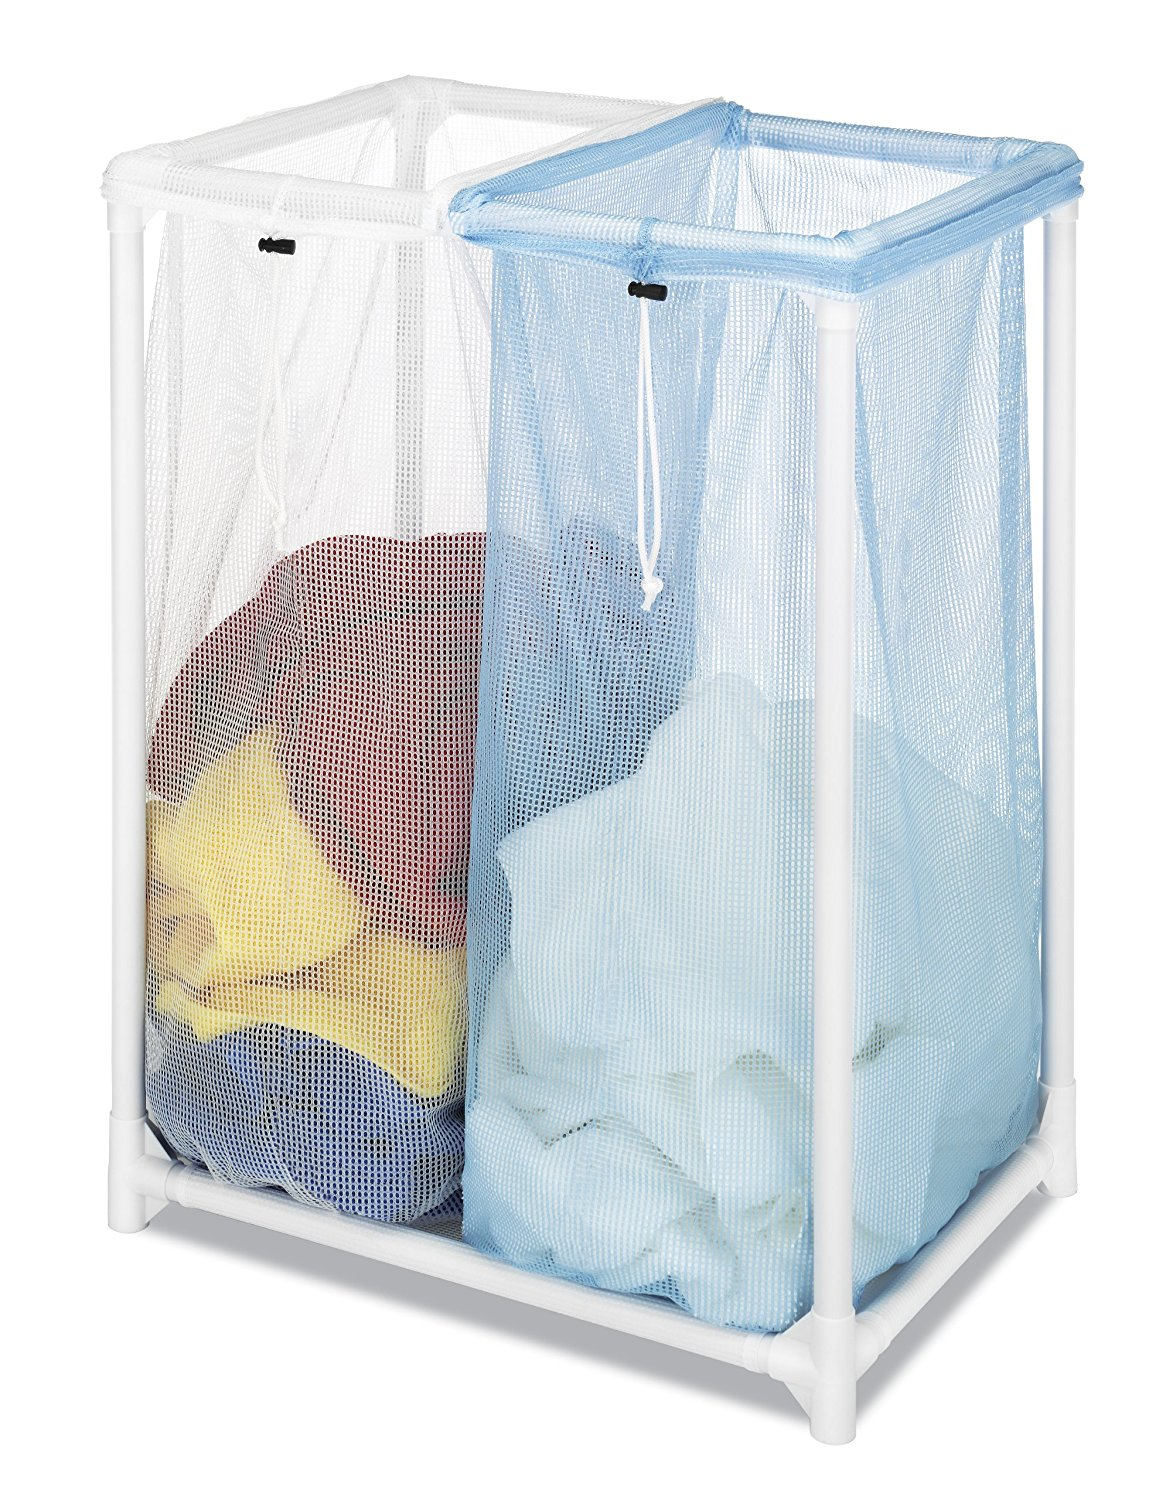 Double Laundry Sorter TRIPLE, Ship from USA,Brand Whitmor by